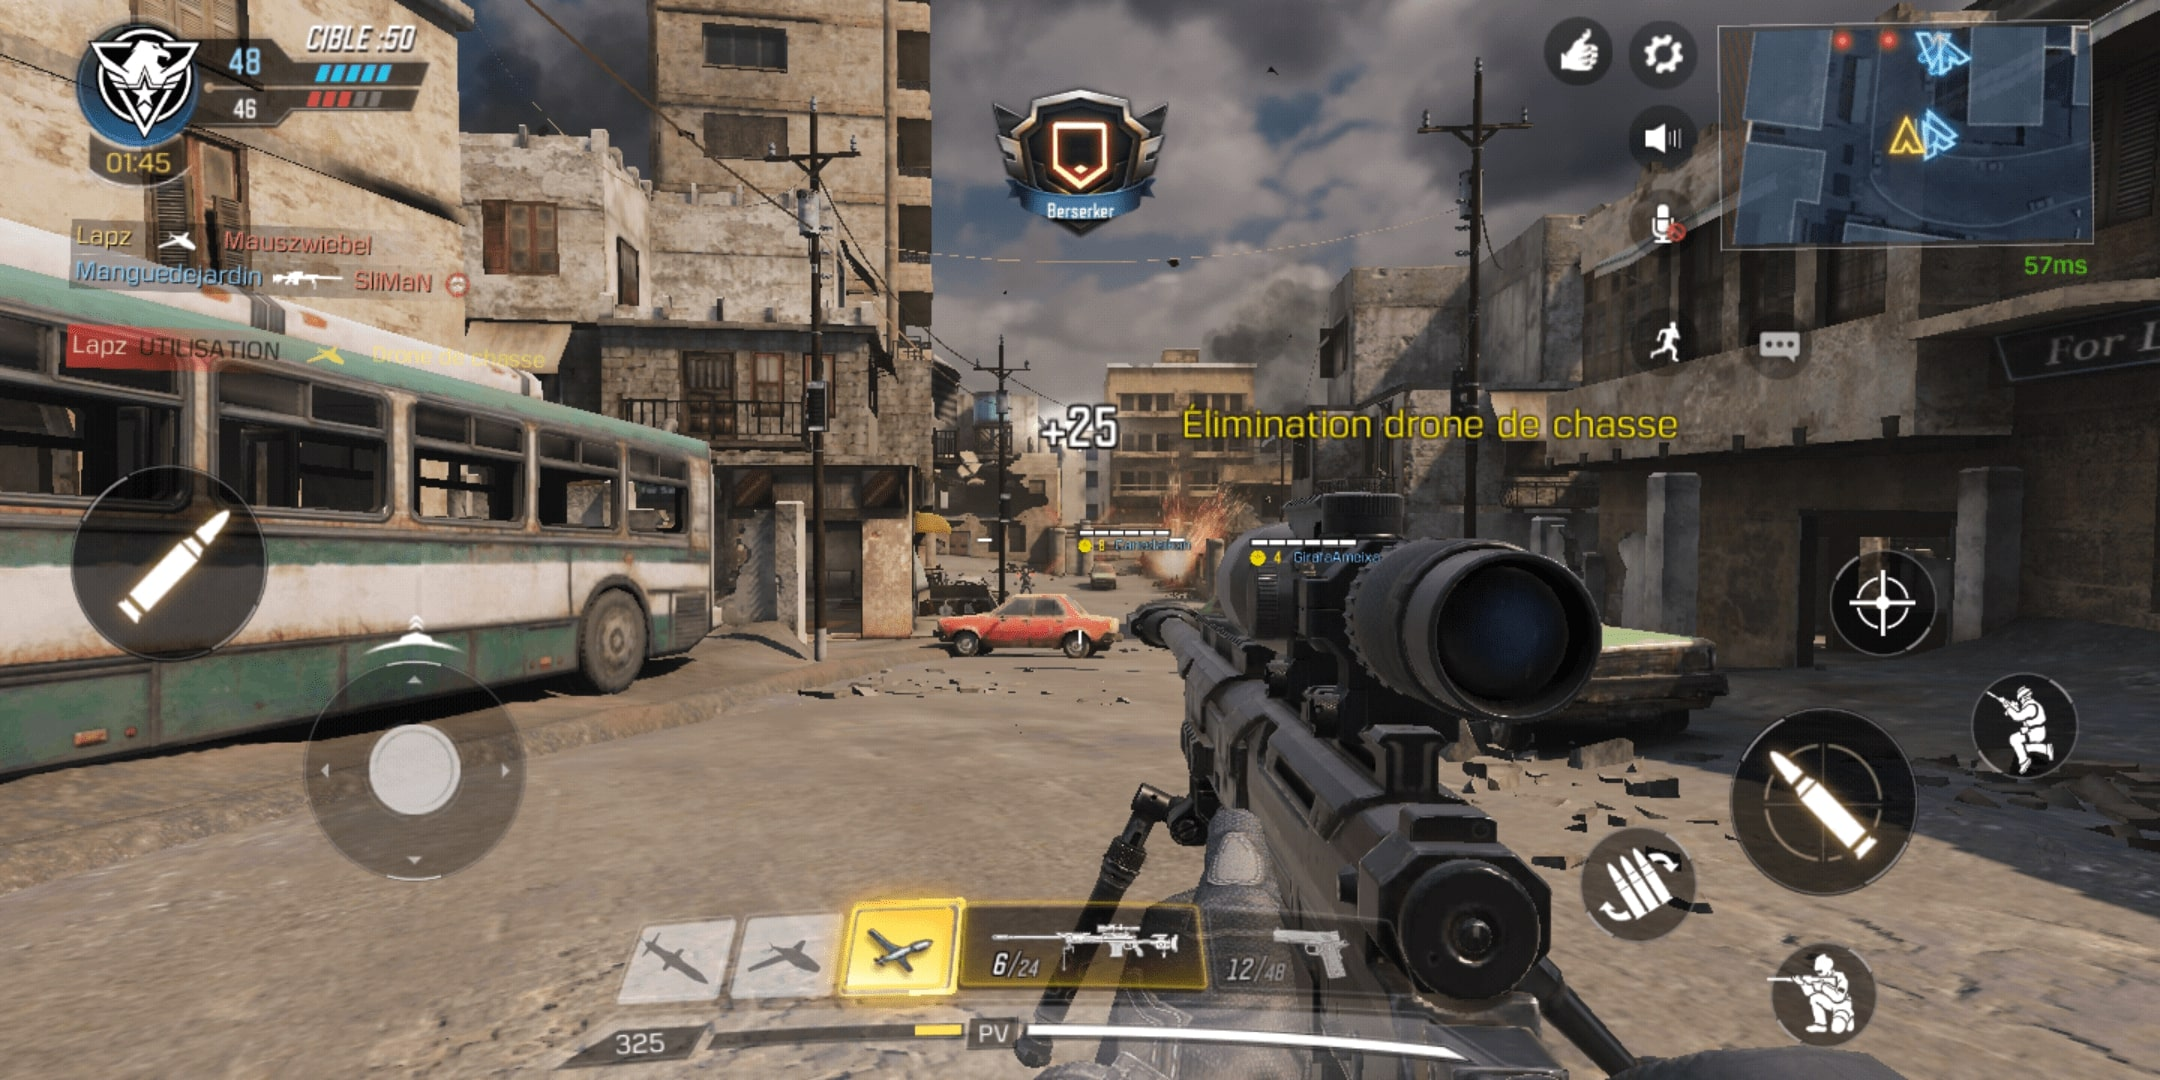 Image 2 : Call of Duty Mobile : 5 manettes tactiles Android pour améliorer son skill